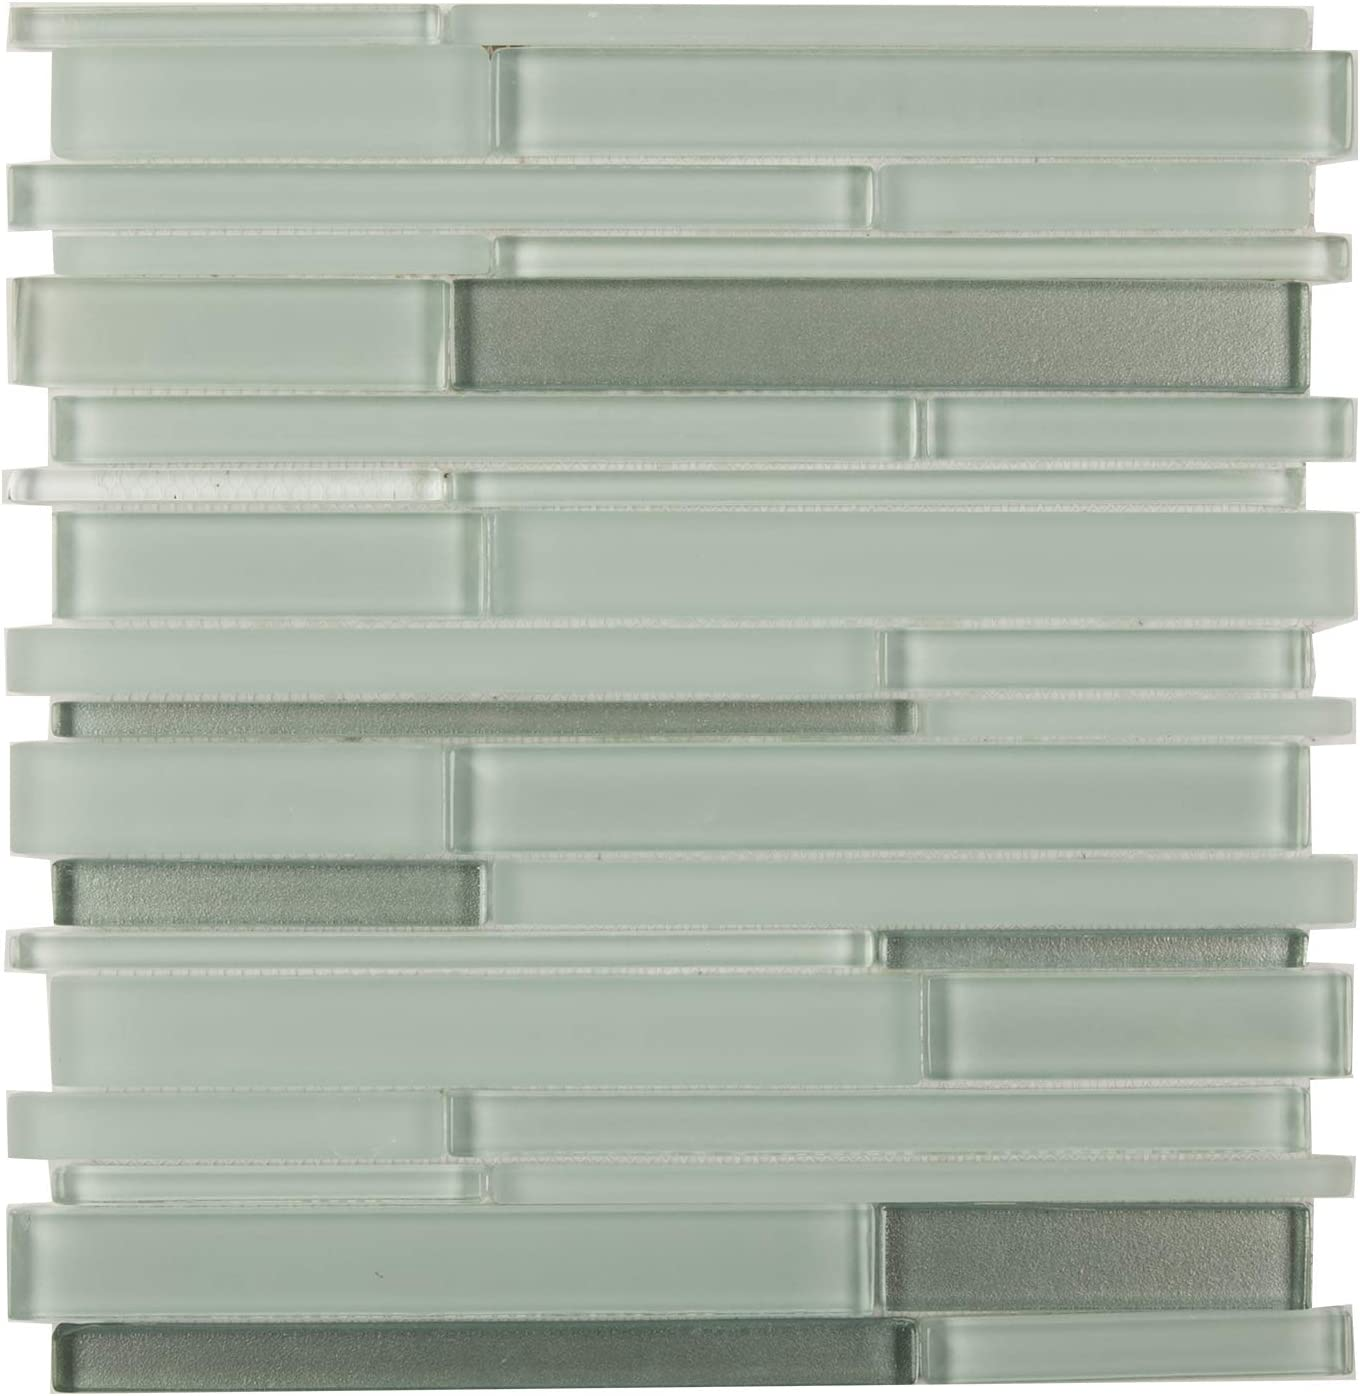 GTM 005 Mixed Strips Glass Mosaic Tile,Simply Color Collection 12-1//2X12 Box of 5 Sheets Key West